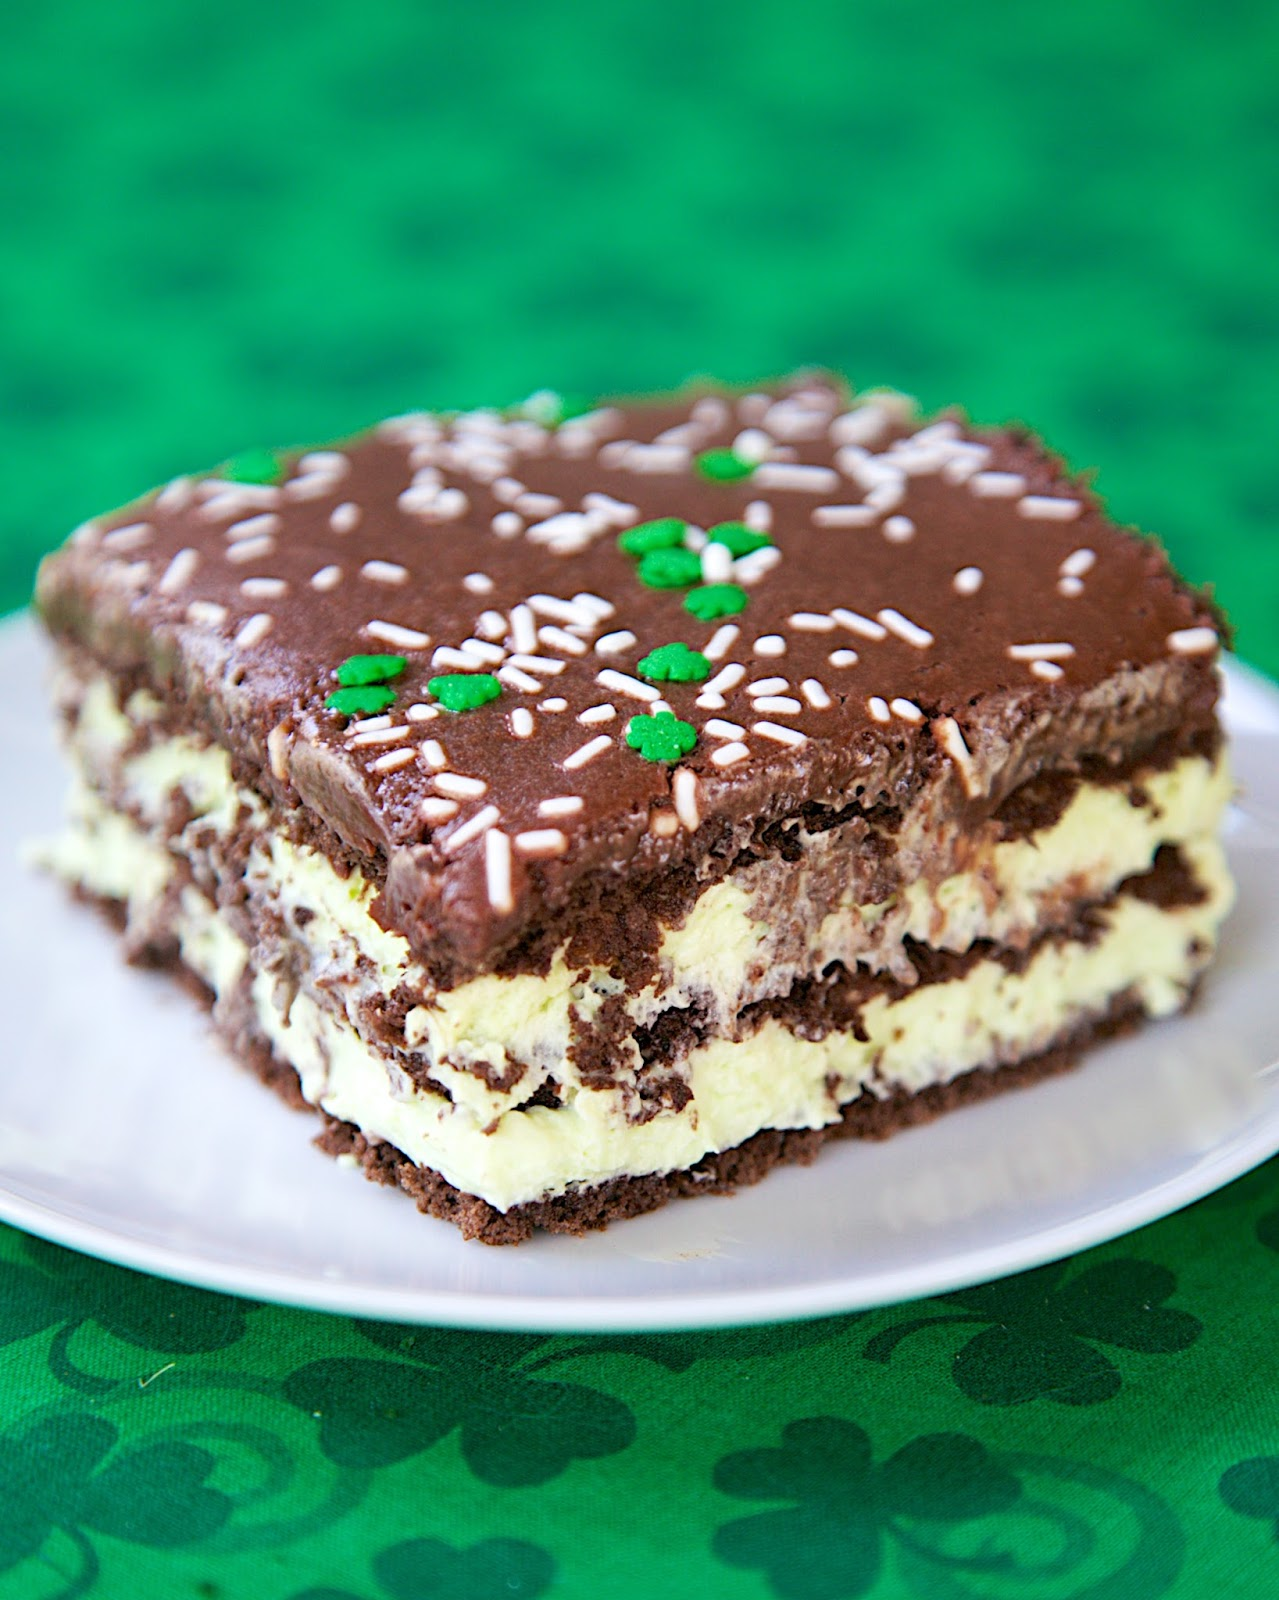 No-Bake Mint Chocolate Eclair Cake - chocolate graham crackers, pudding, cool whip, mint extract and chocolate frosting. Make ahead and refrigerate. Great dessert recipe for a crowd and St. Patrick's Day party!